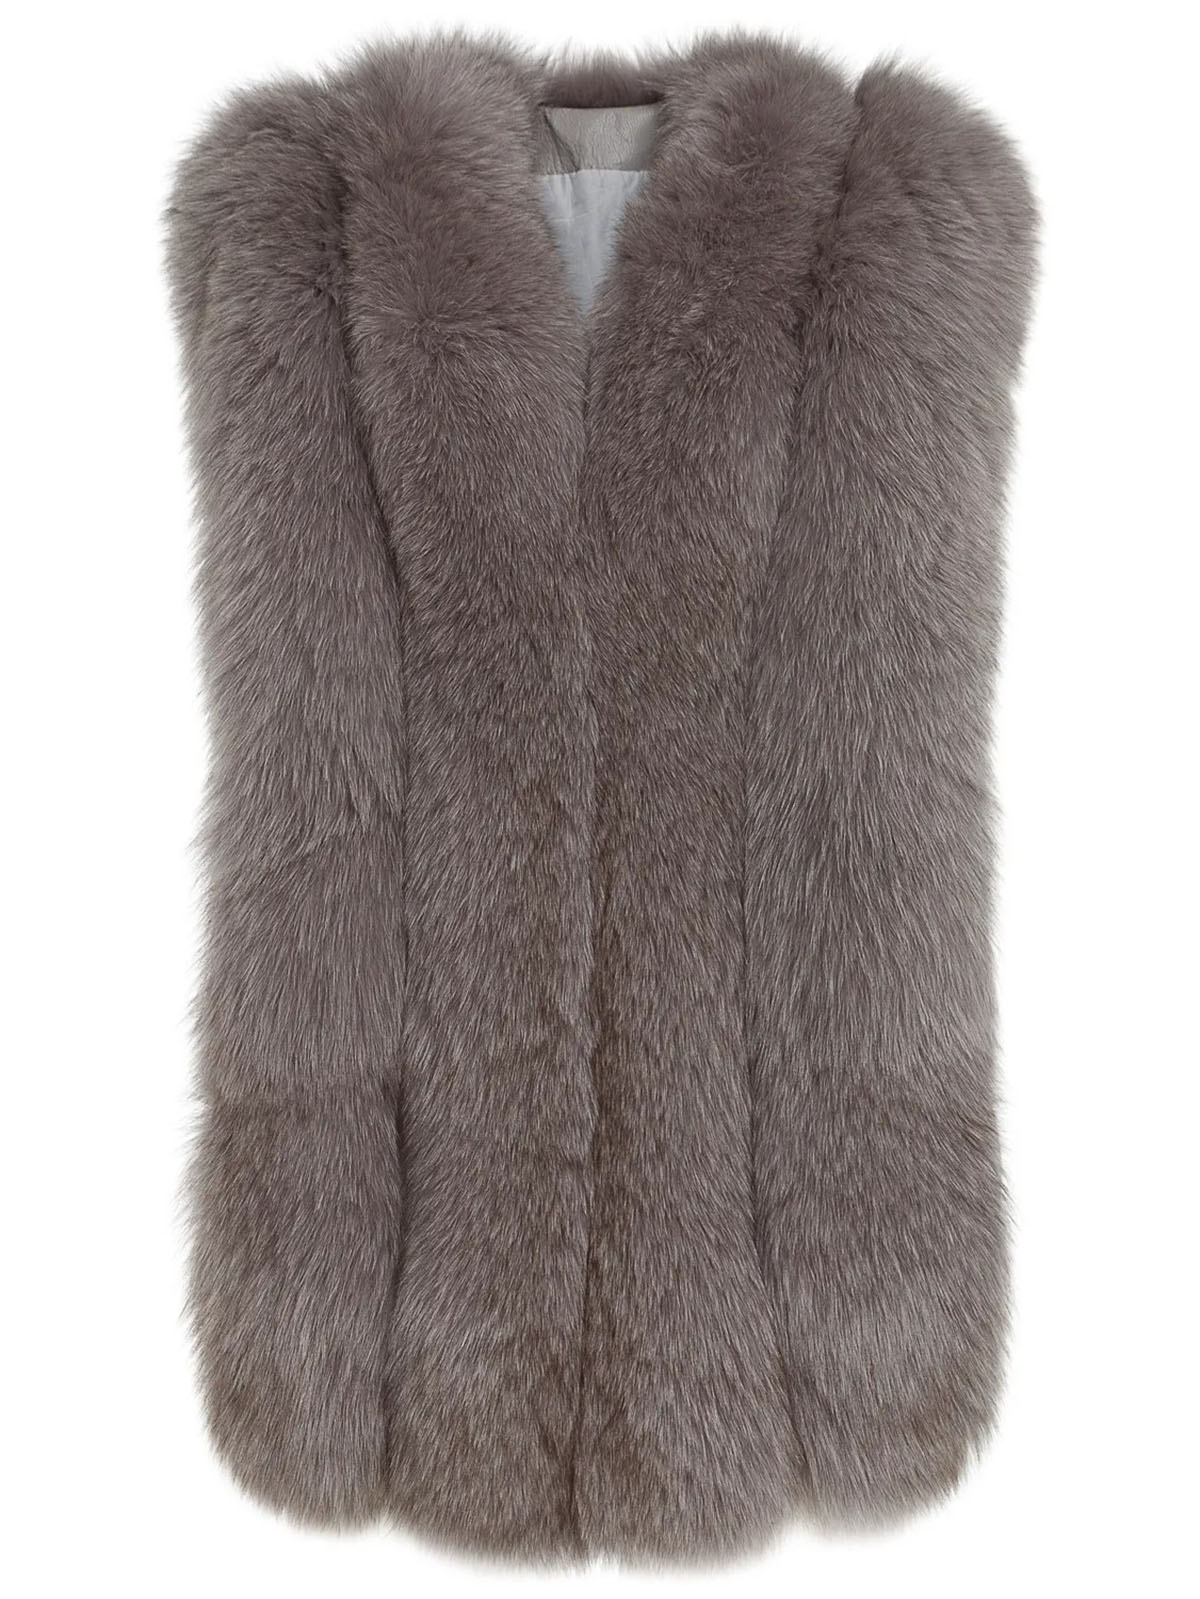 Faux fashion women's fur mink coat